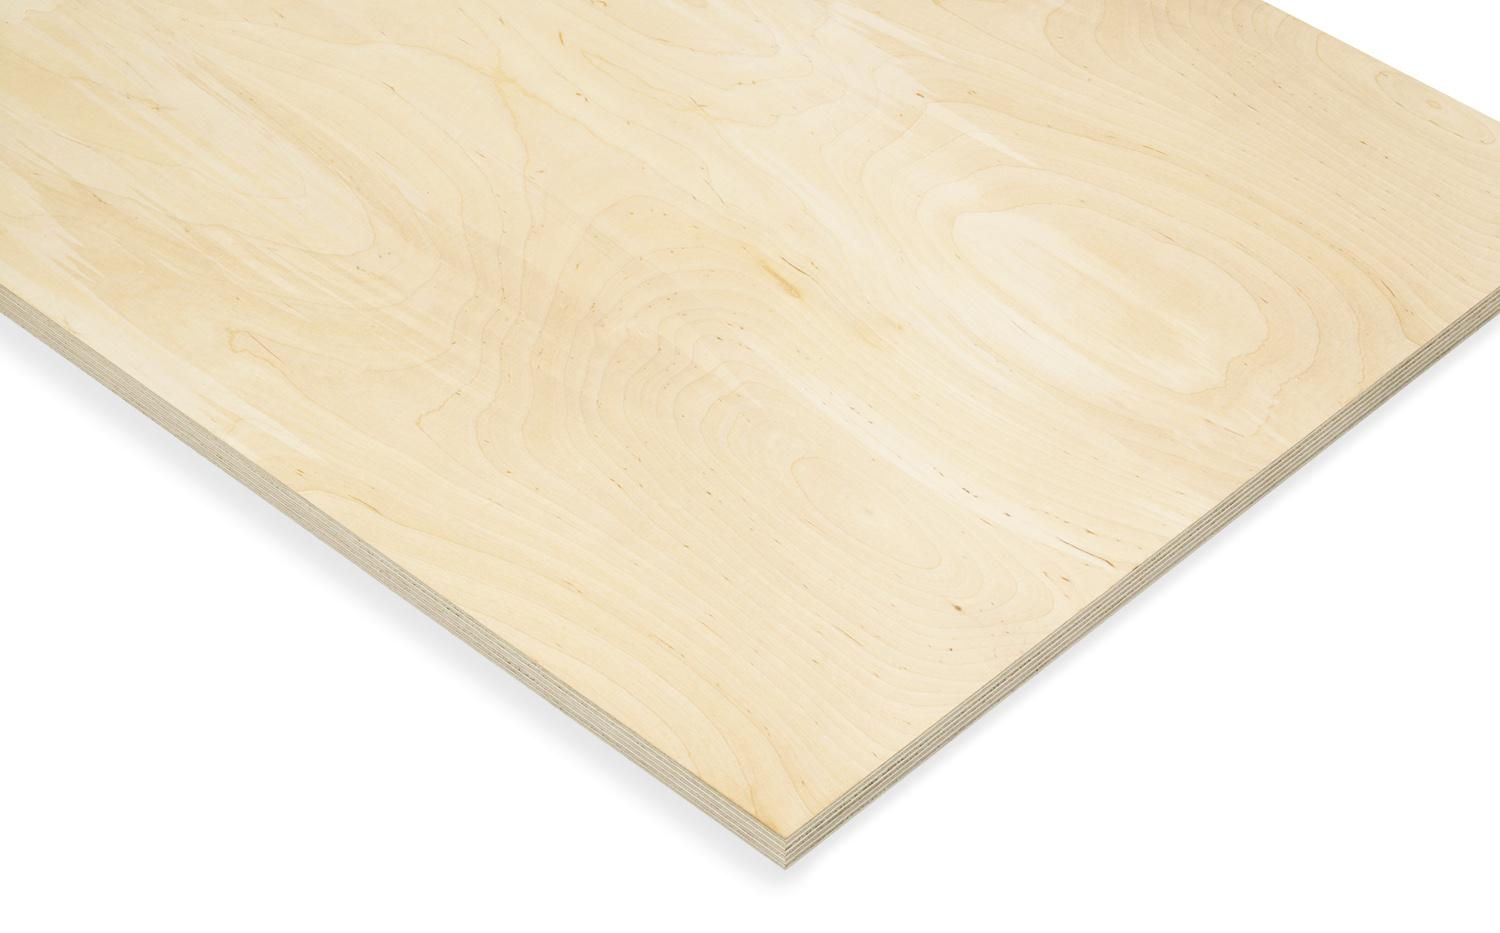 KoskiStandard uncoated Finnish birch plywood for multiple use.